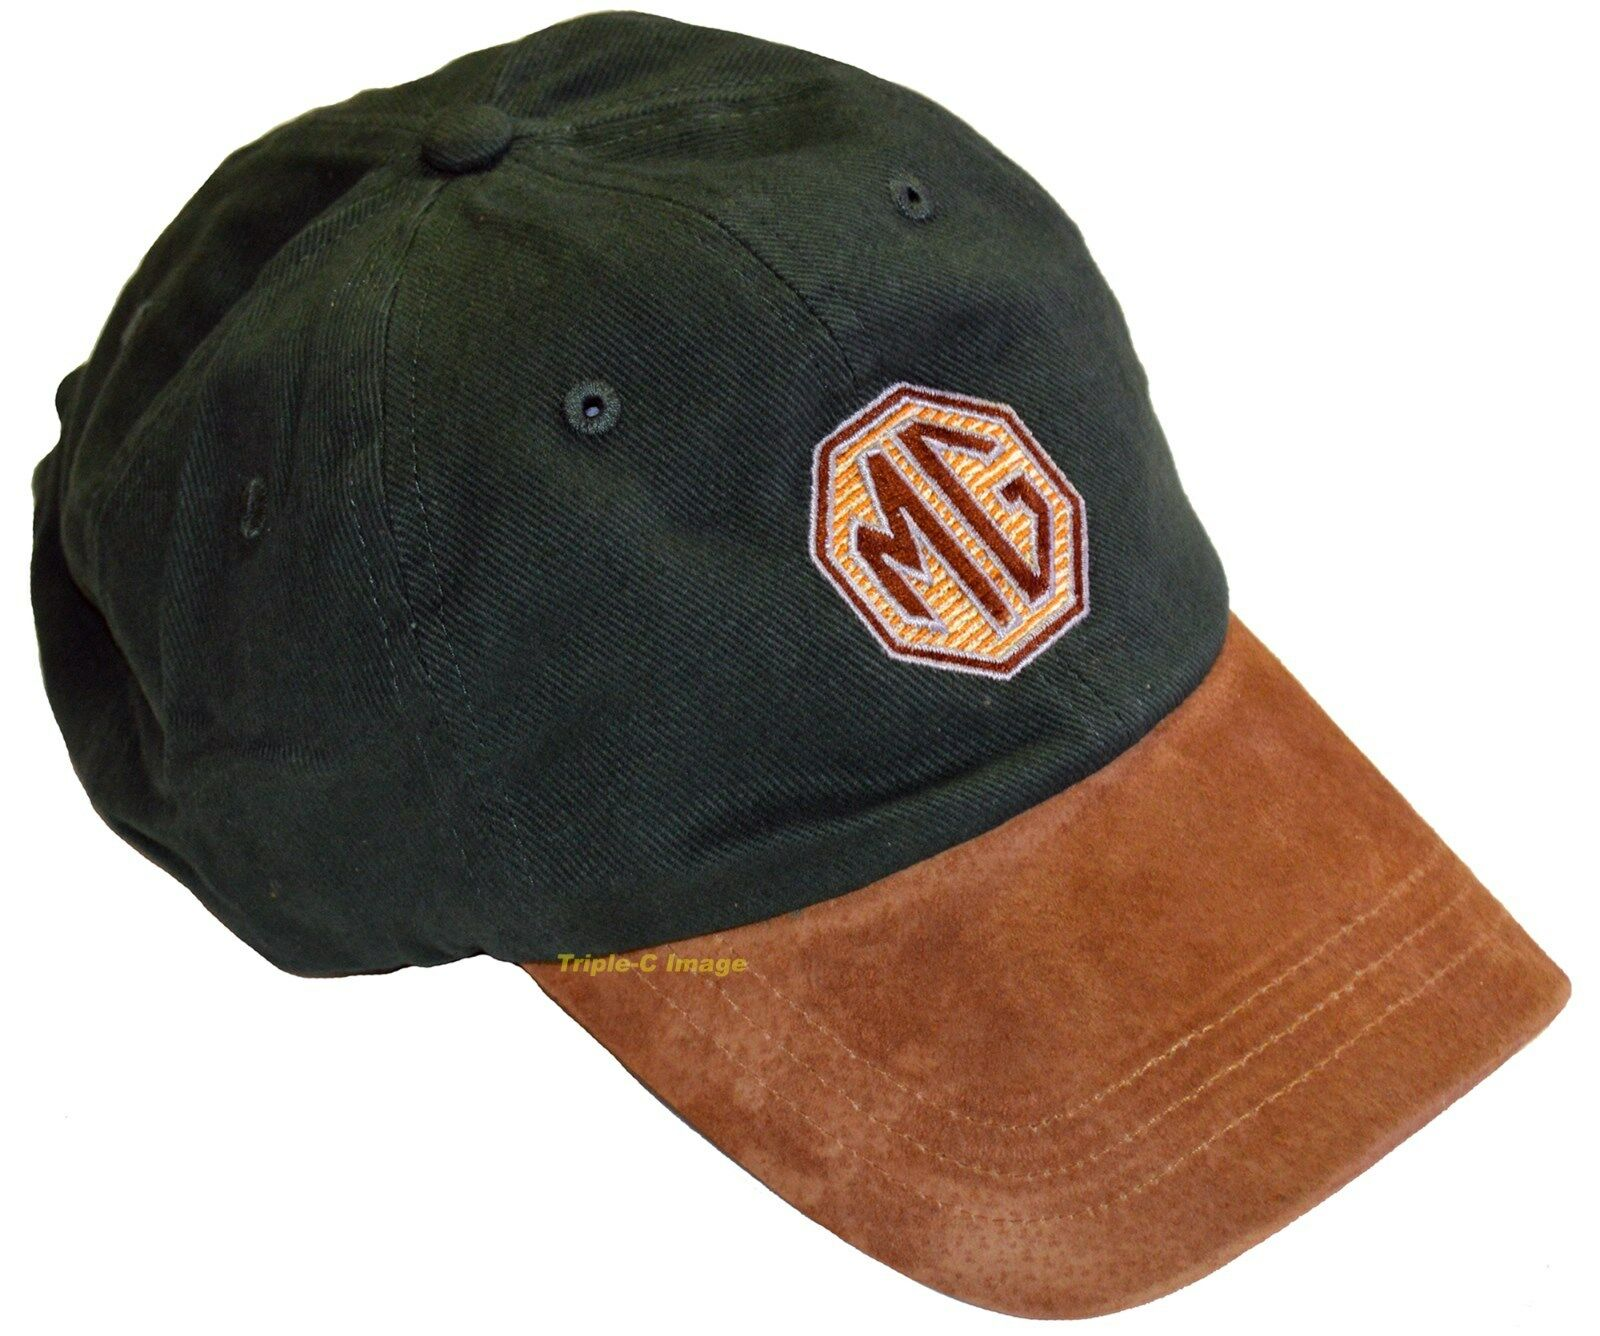 MG Green & mock suede embroidered hat - MGB etc